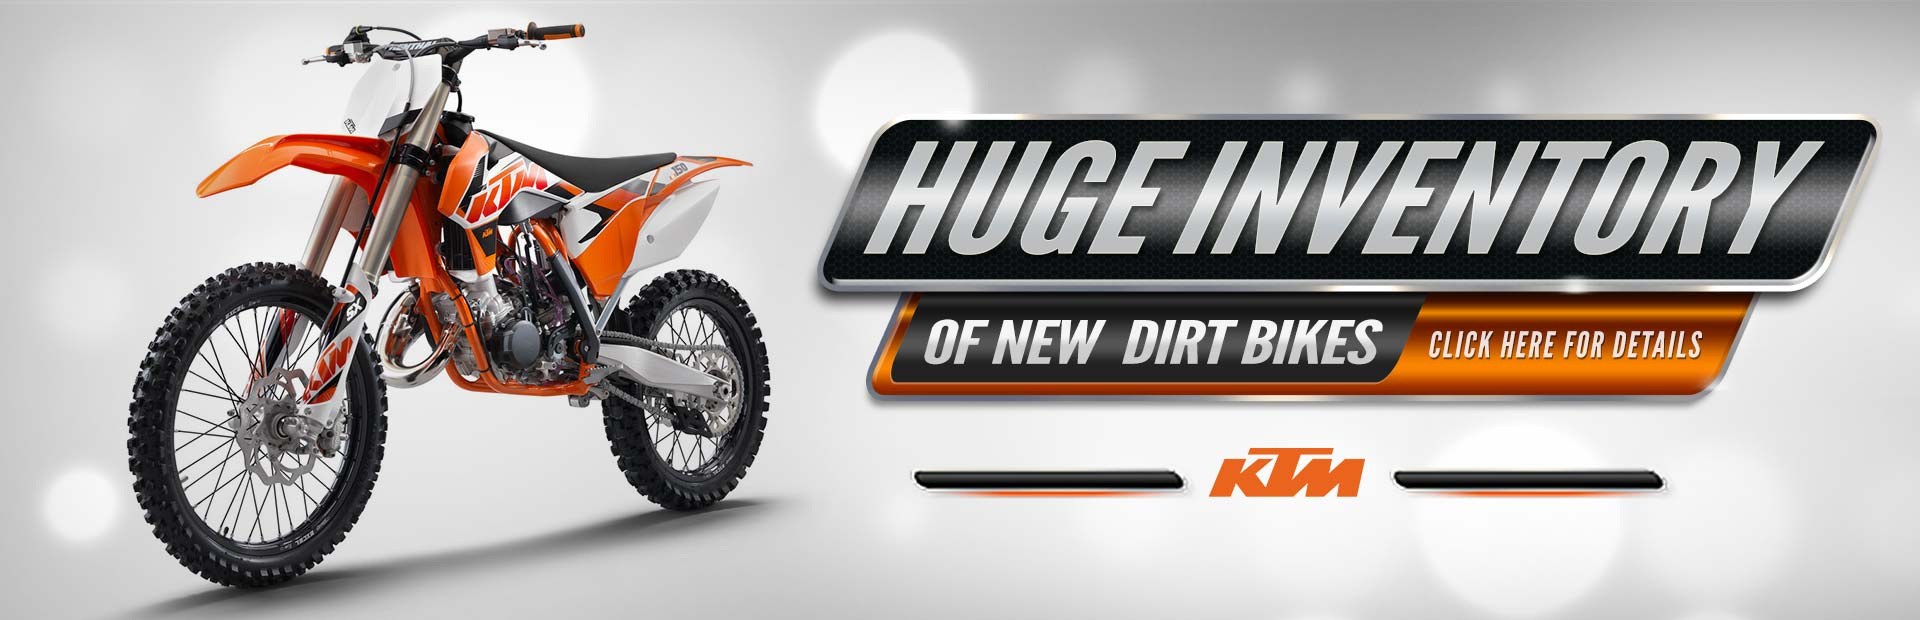 Click here to check out our huge inventory of new KTM dirt bikes.